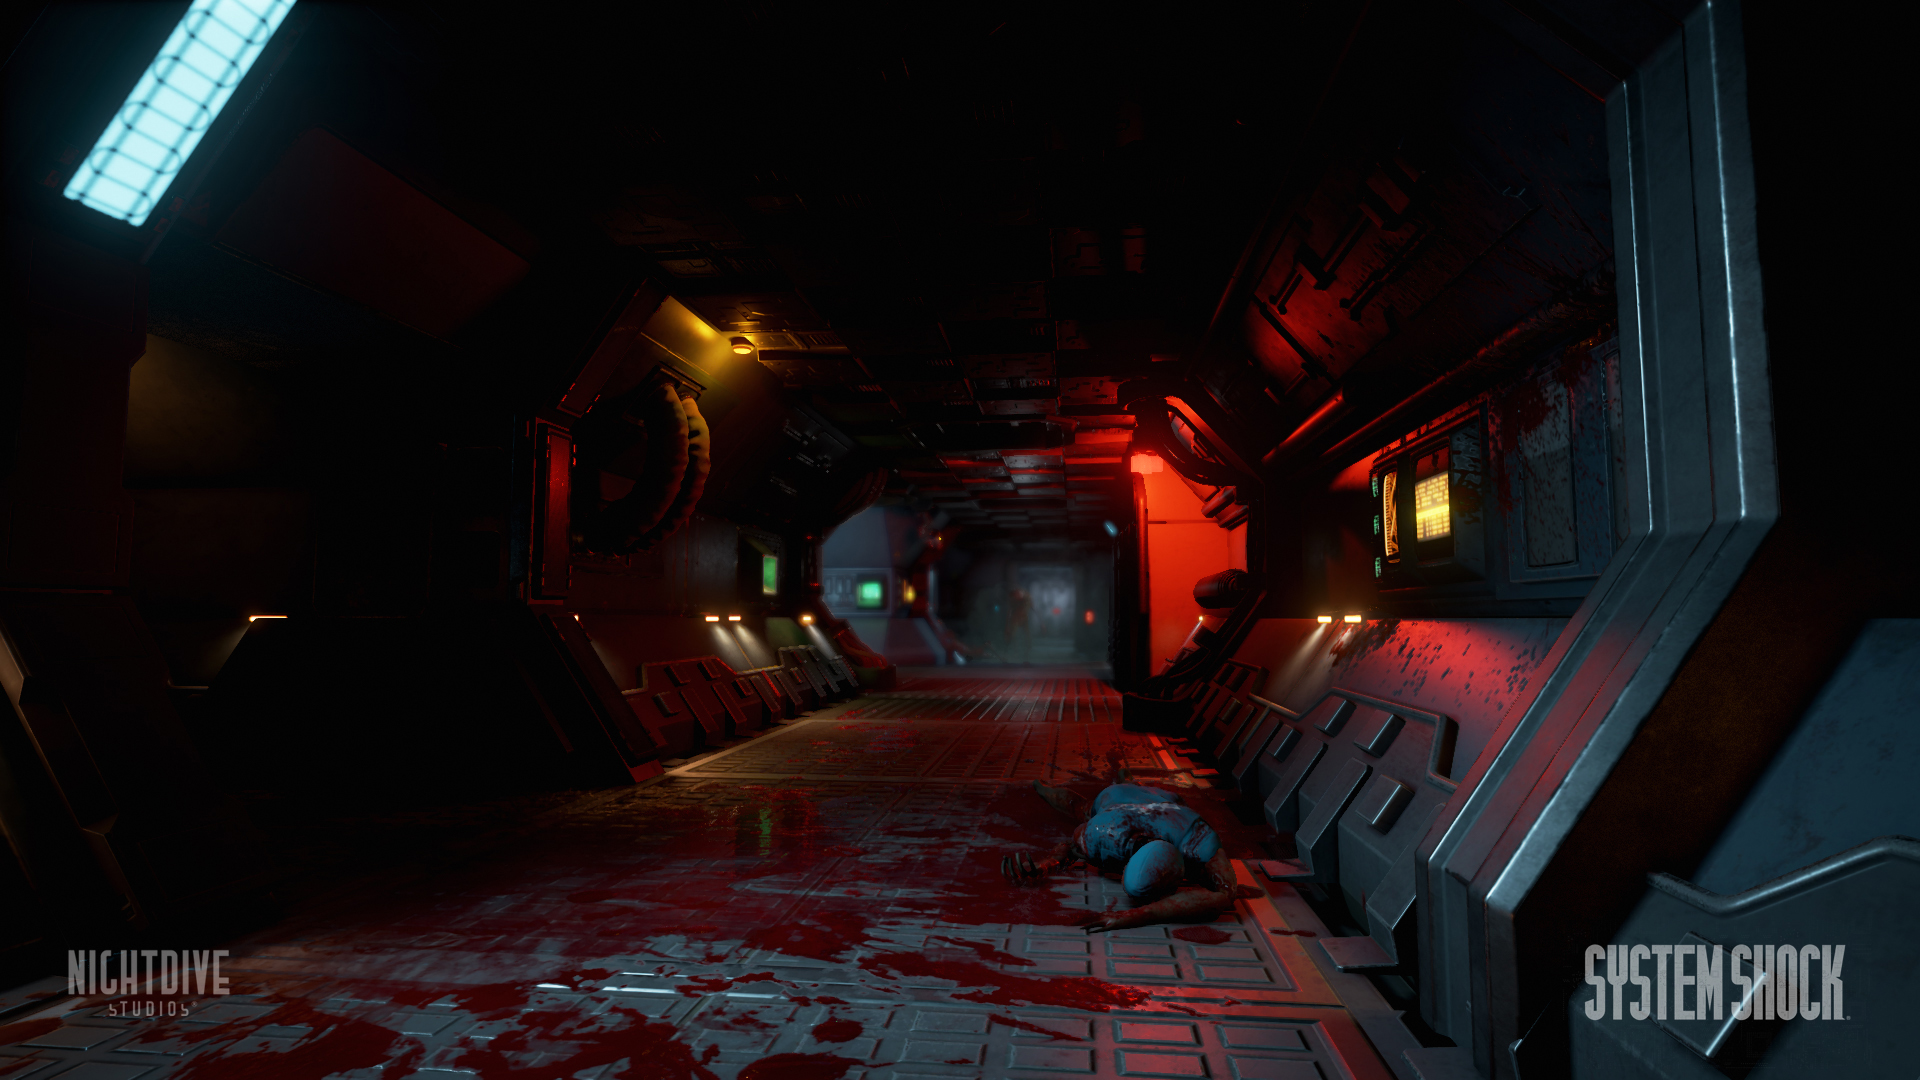 System Shock remake moves to Unreal Engine 4